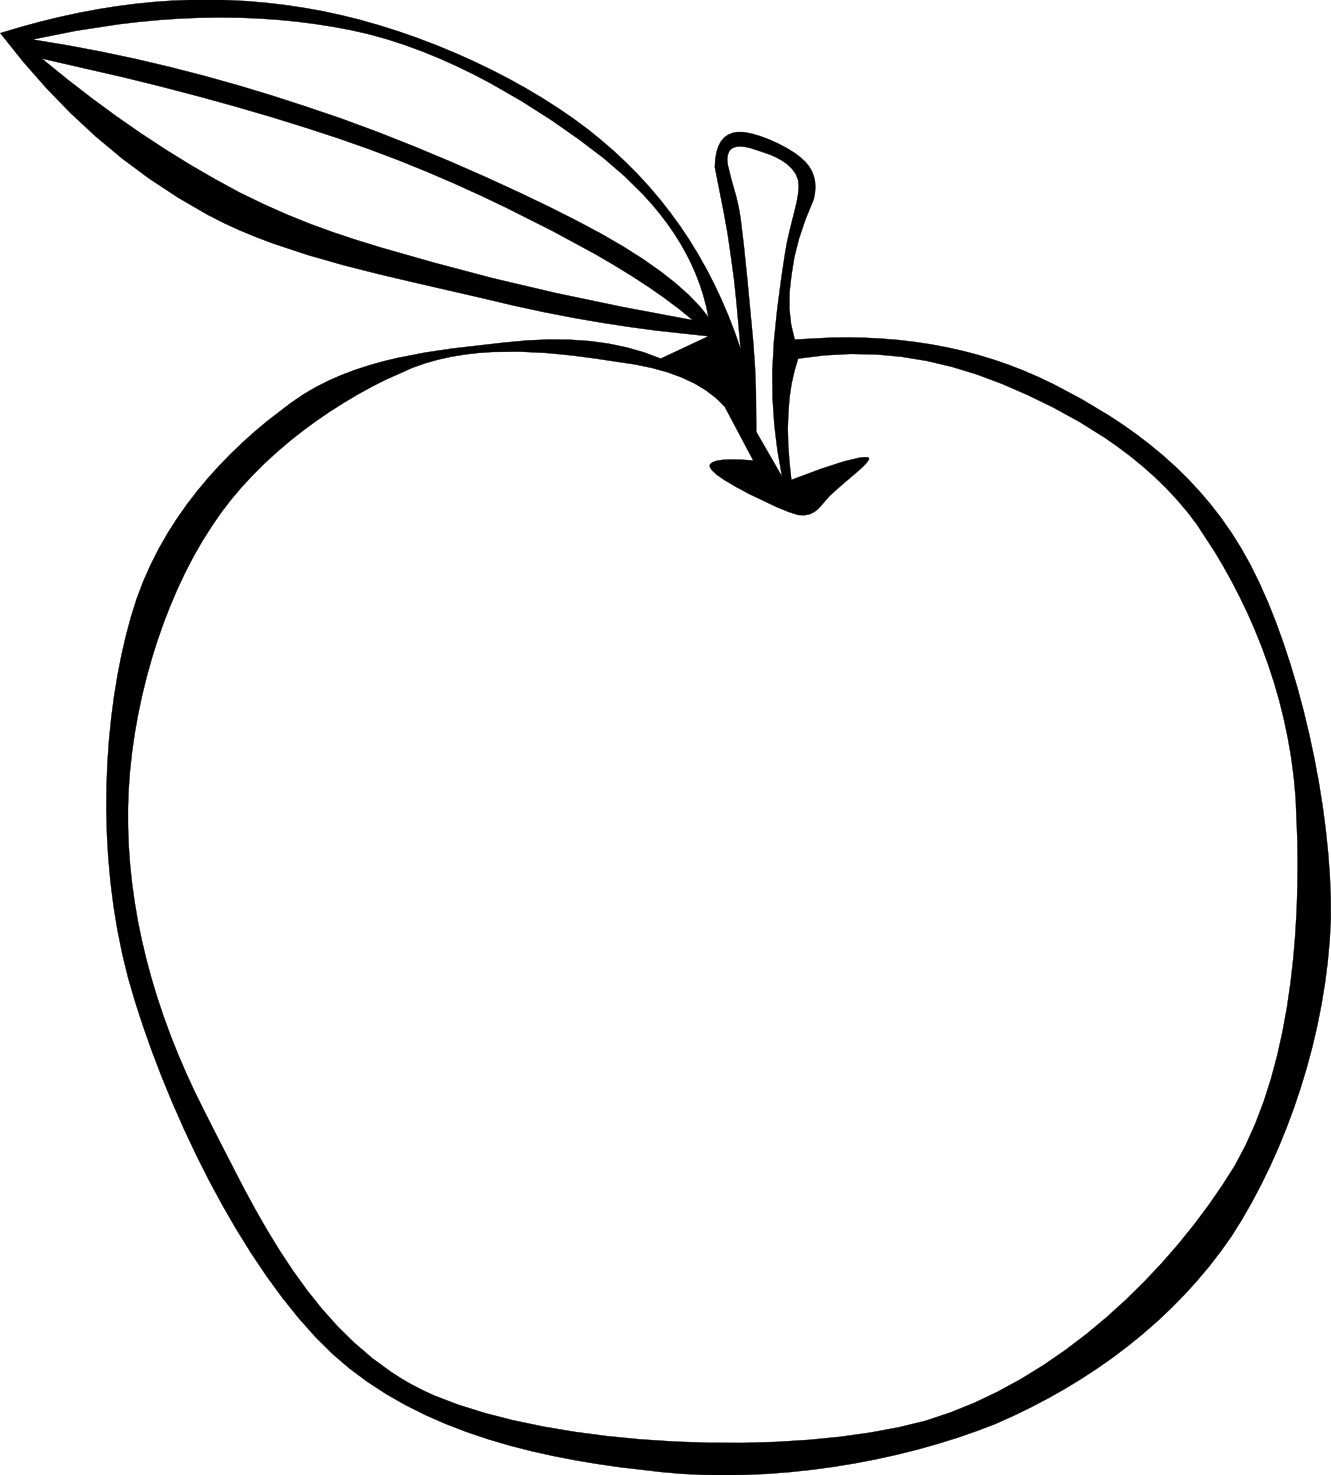 Apple seed clipart black and white vector royalty free download Black And White Fruit Clipart | Clipart Panda - Free Clipart Images vector royalty free download